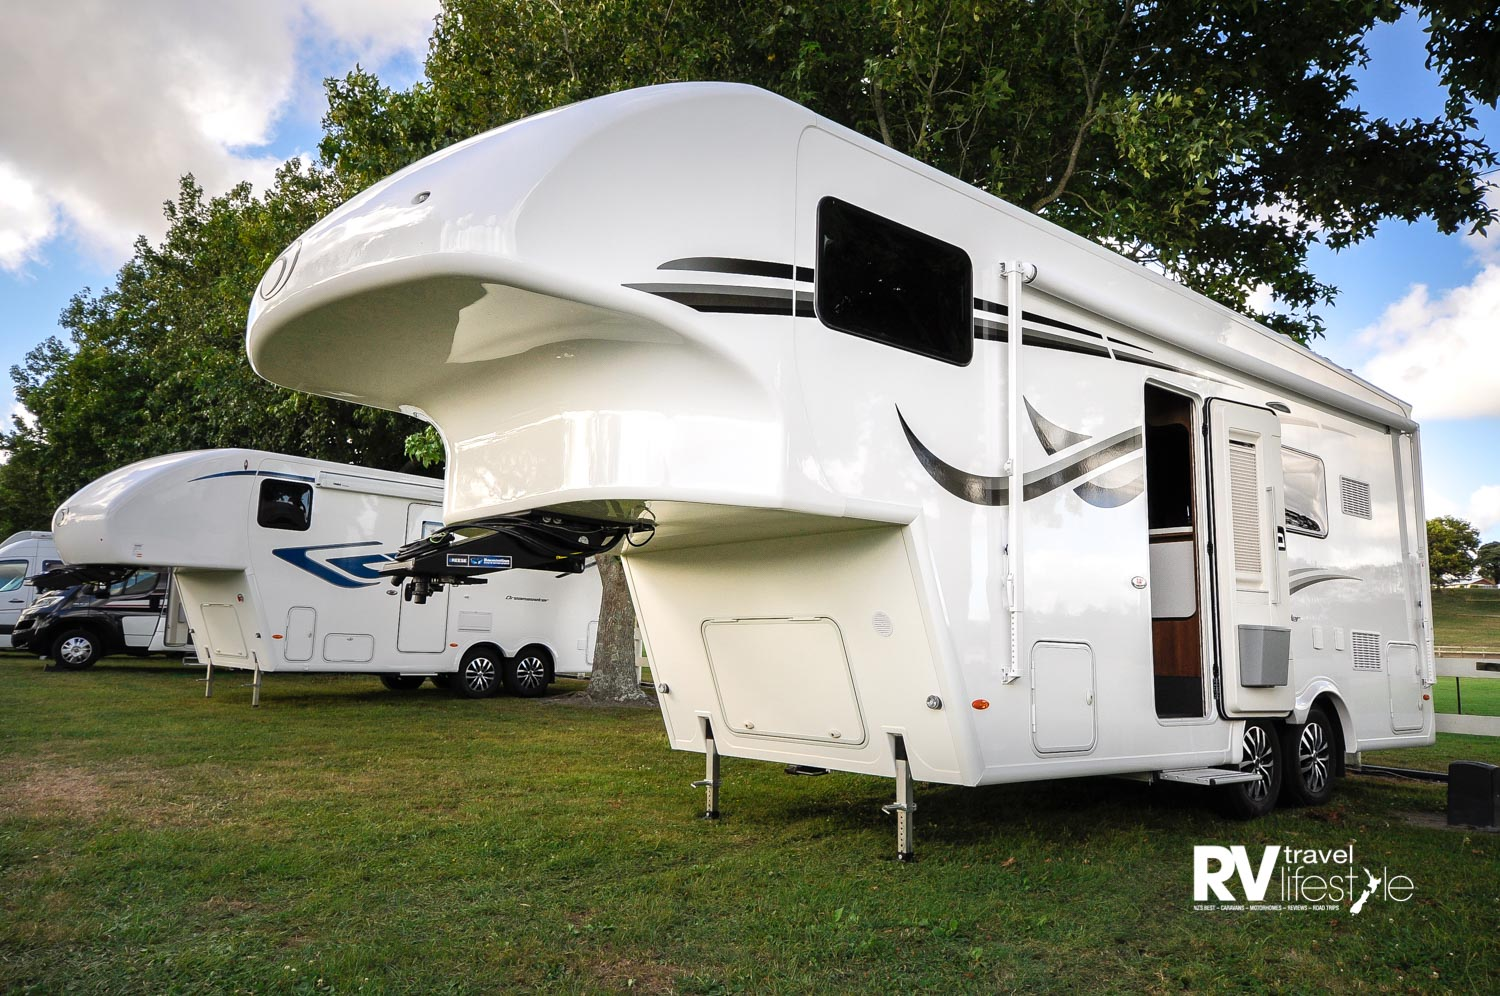 The reviewed four-berth Celtic Rambler on the right, the smaller Dream Seeker on the left is a five-berth model